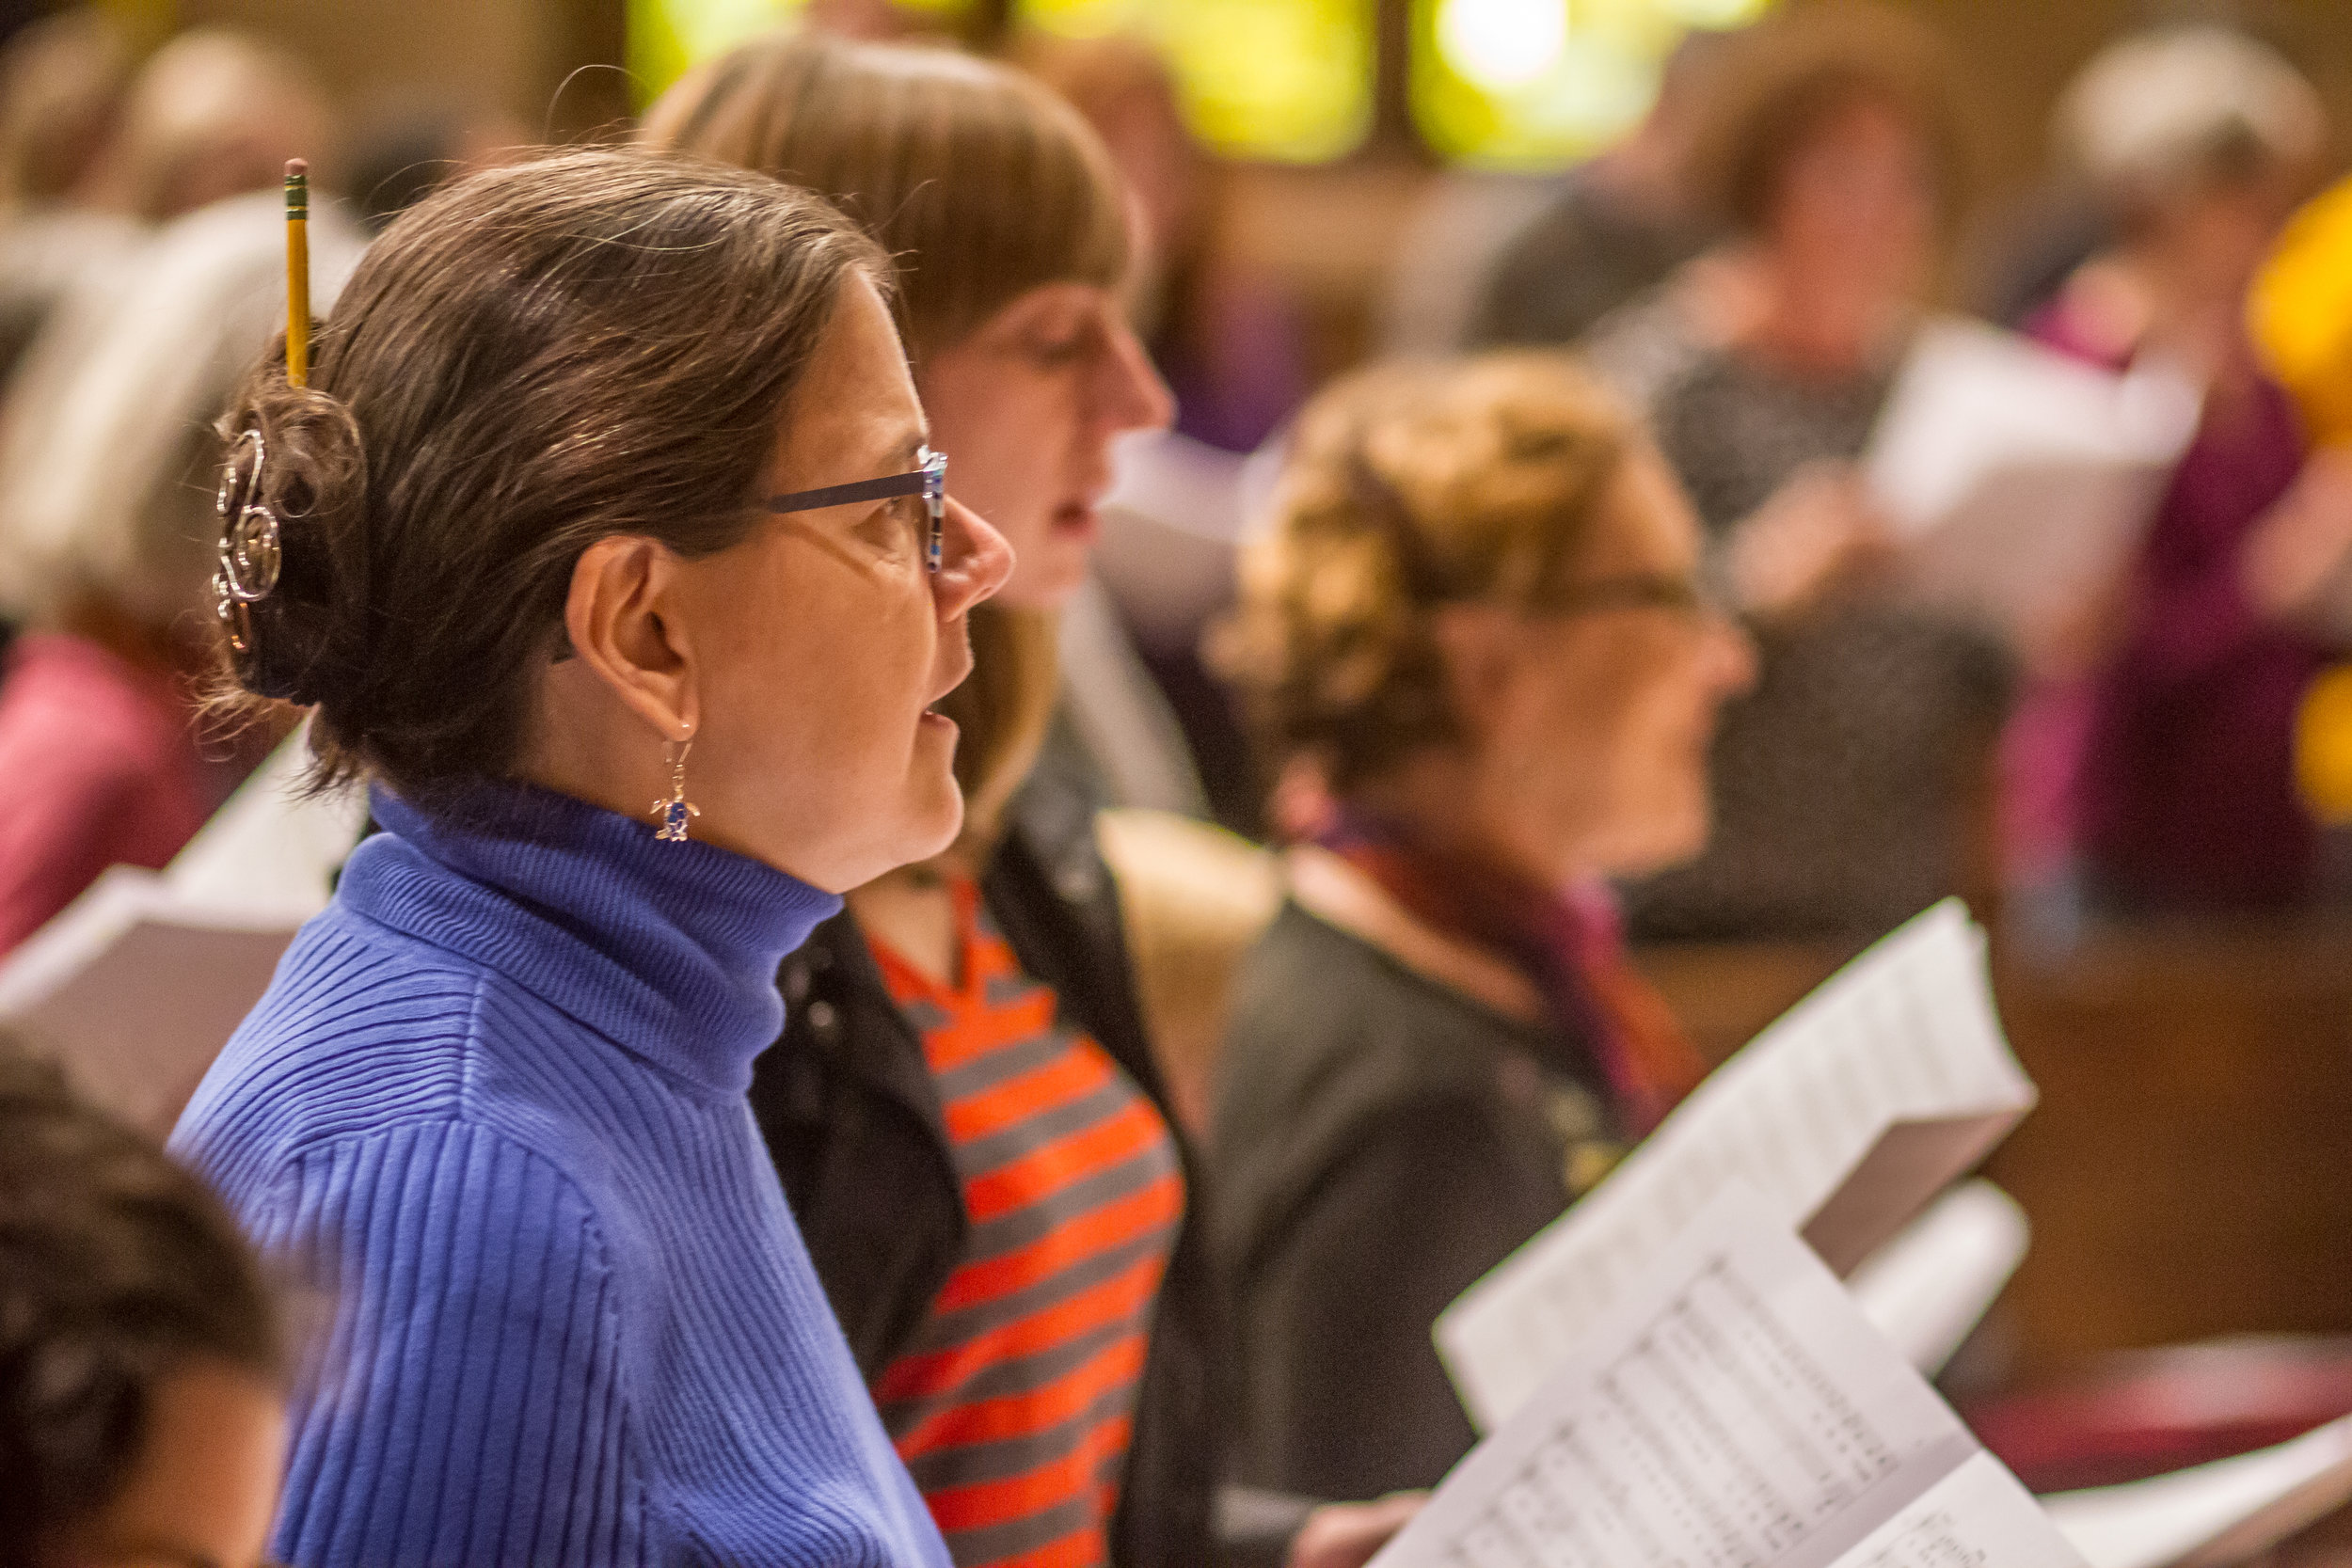 """""""PDX Vox has been a creative lifeline for me. I deeply appreciate the expert guidance of the music director and instructors as well as the welcoming community of singers of all levels."""" - — Karen N., Monday NE and Wednesday Groups"""